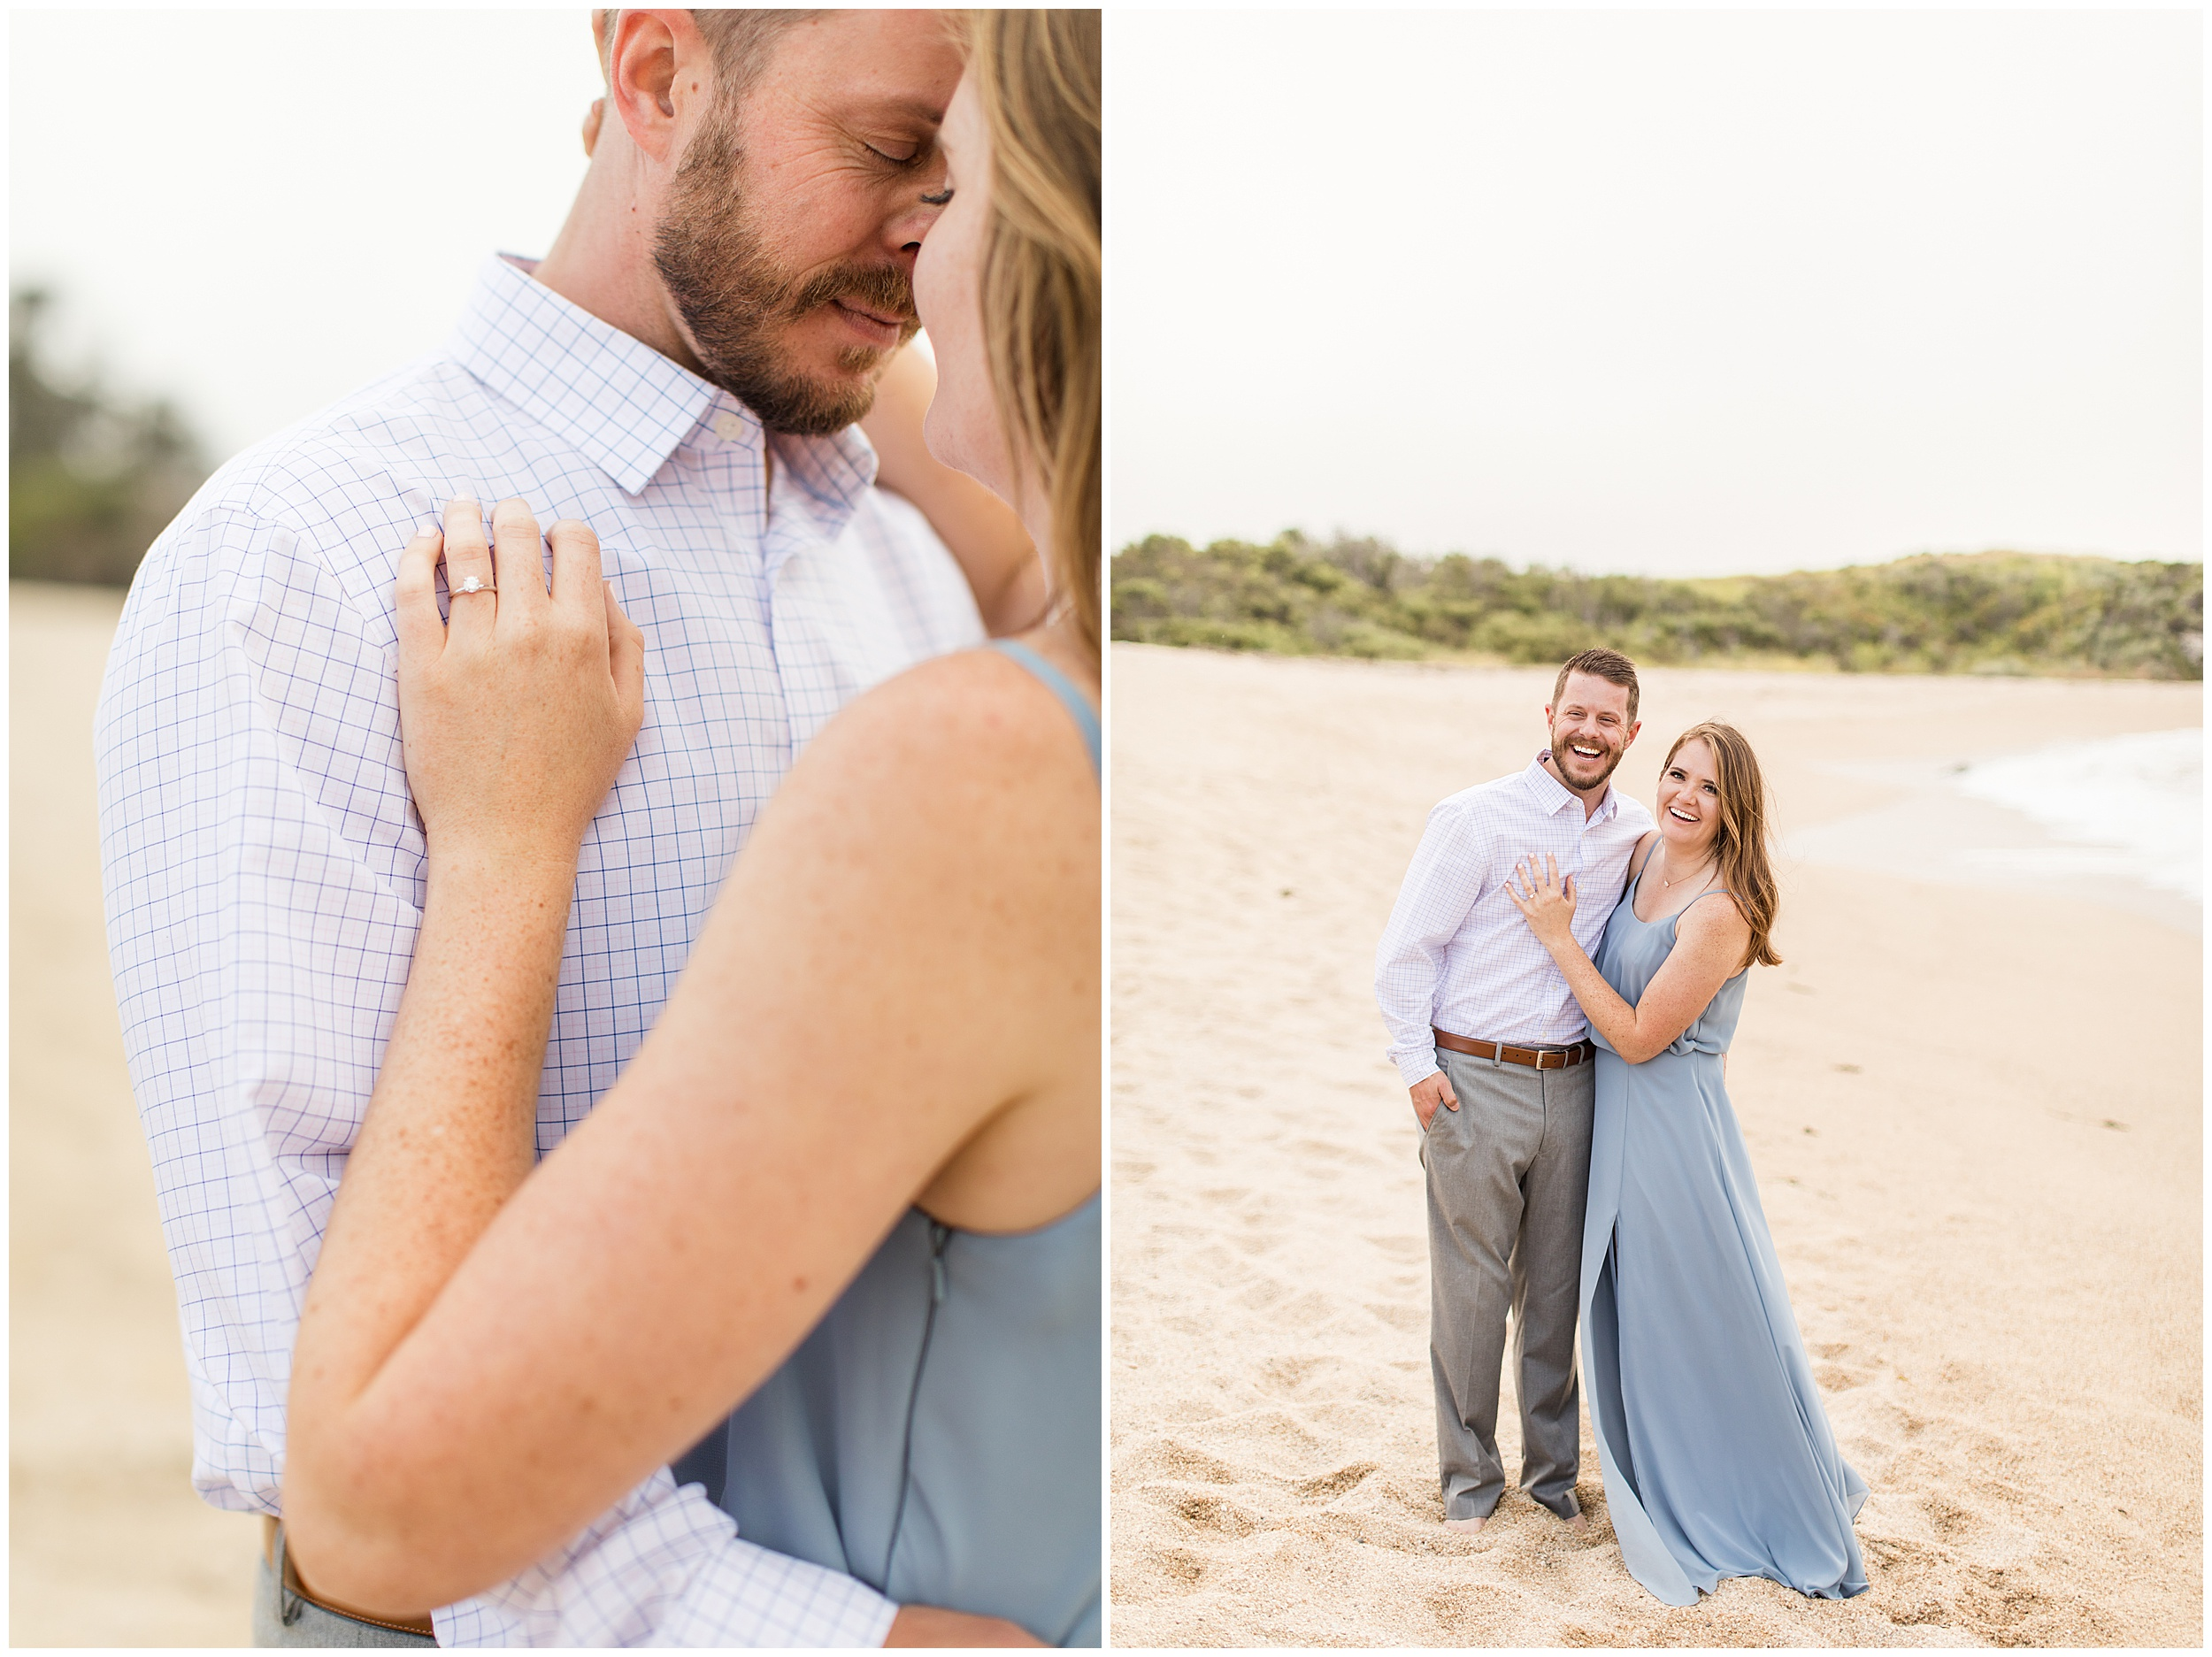 2019 carmel by the sea surprise proposal engagement session wedding photographer angela sue photography_0021.jpg